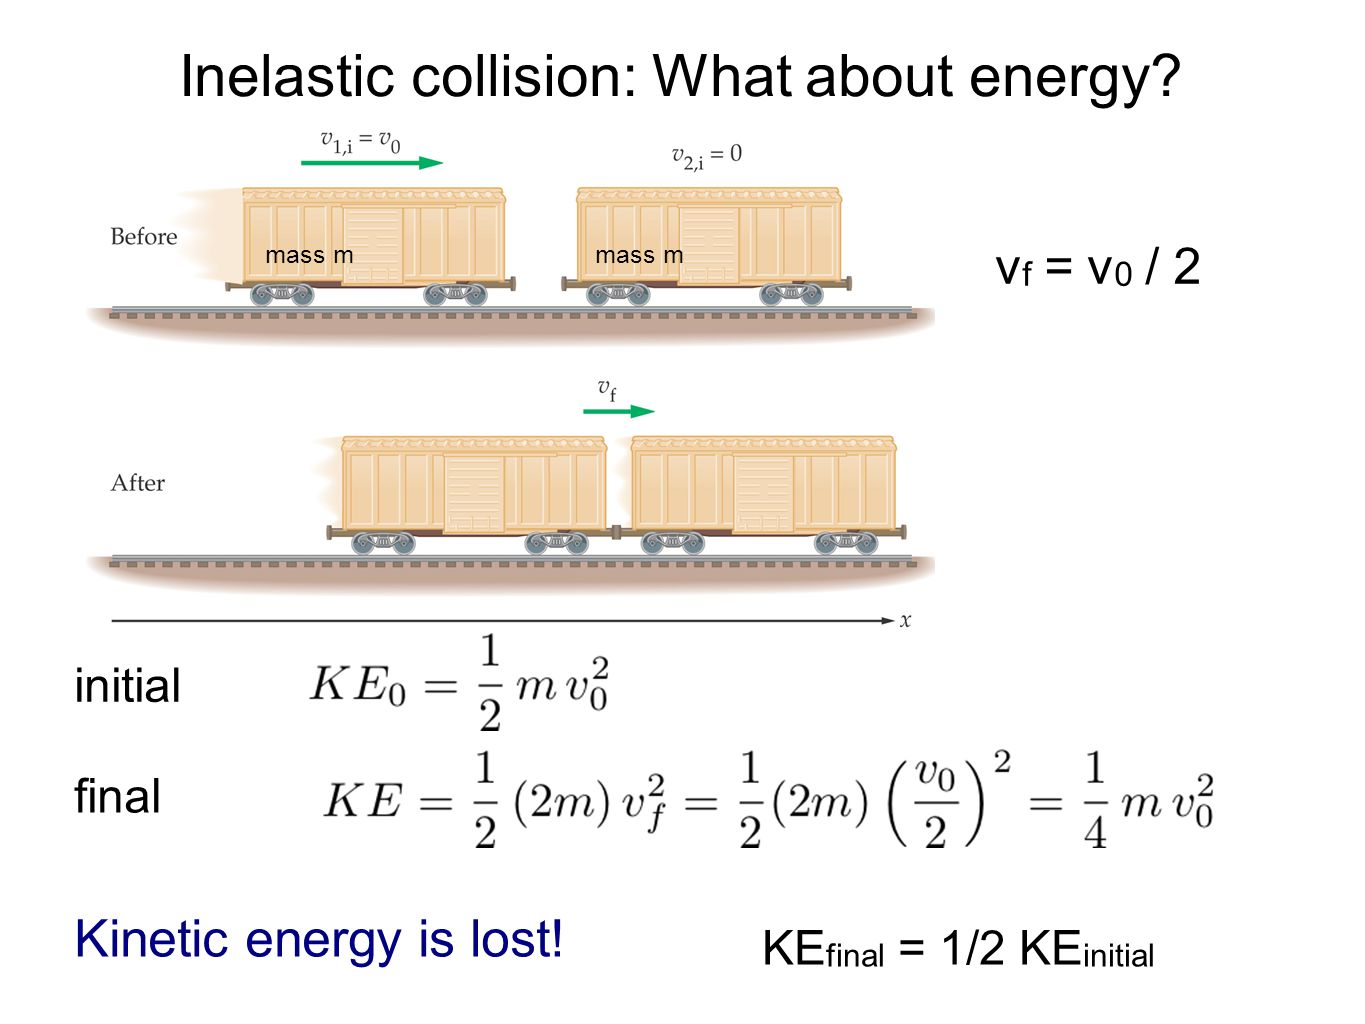 Inelastic collision: What about energy